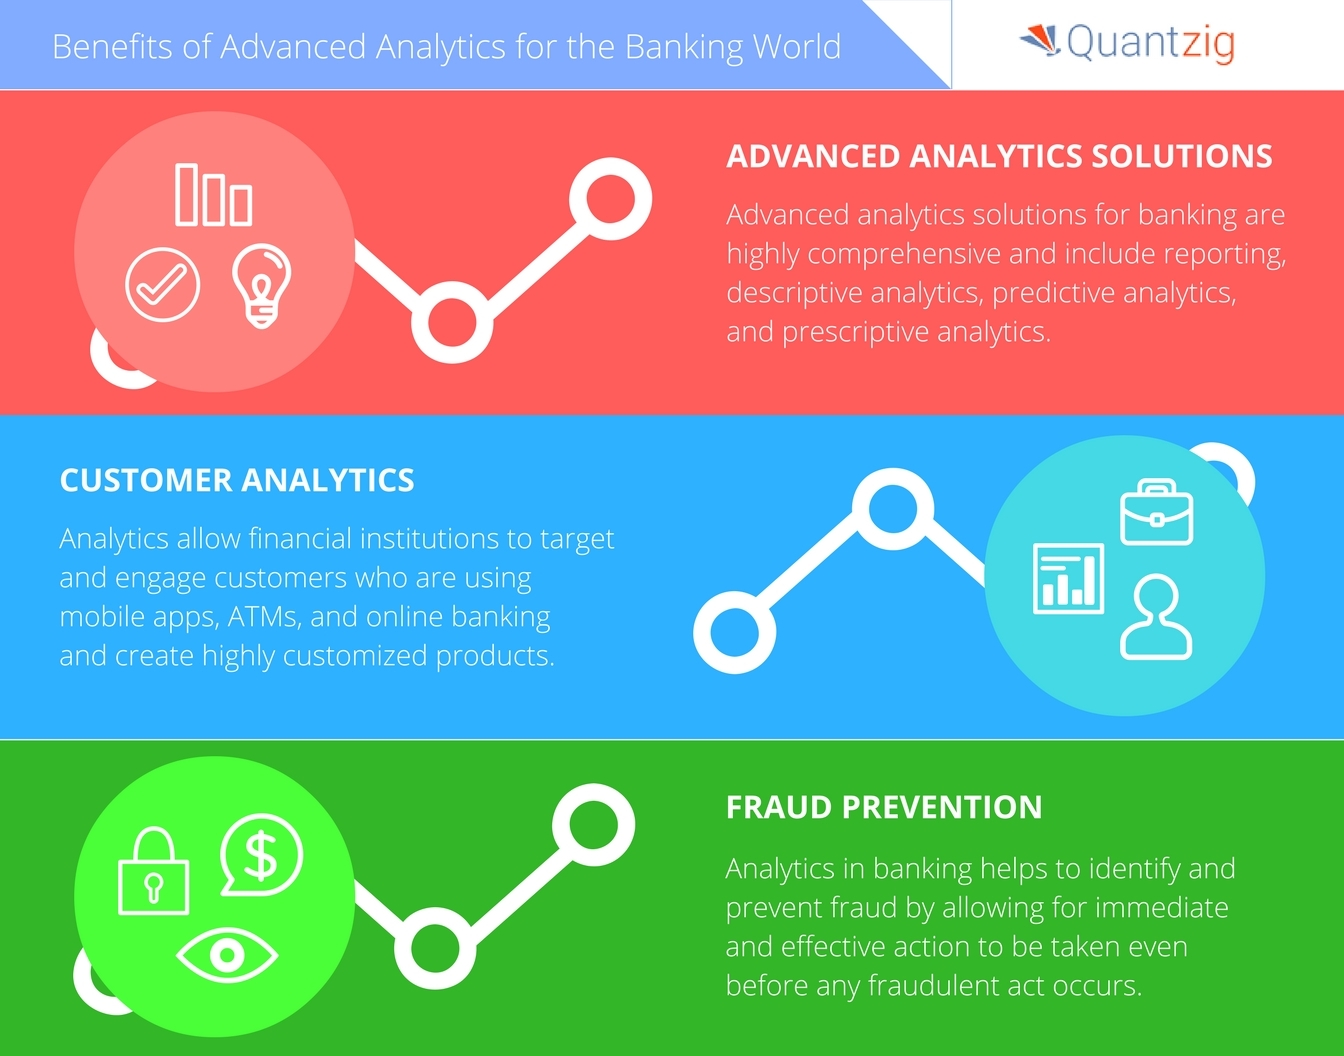 Advanced analytics are reshaping the banking world. (Photo: Business Wire)